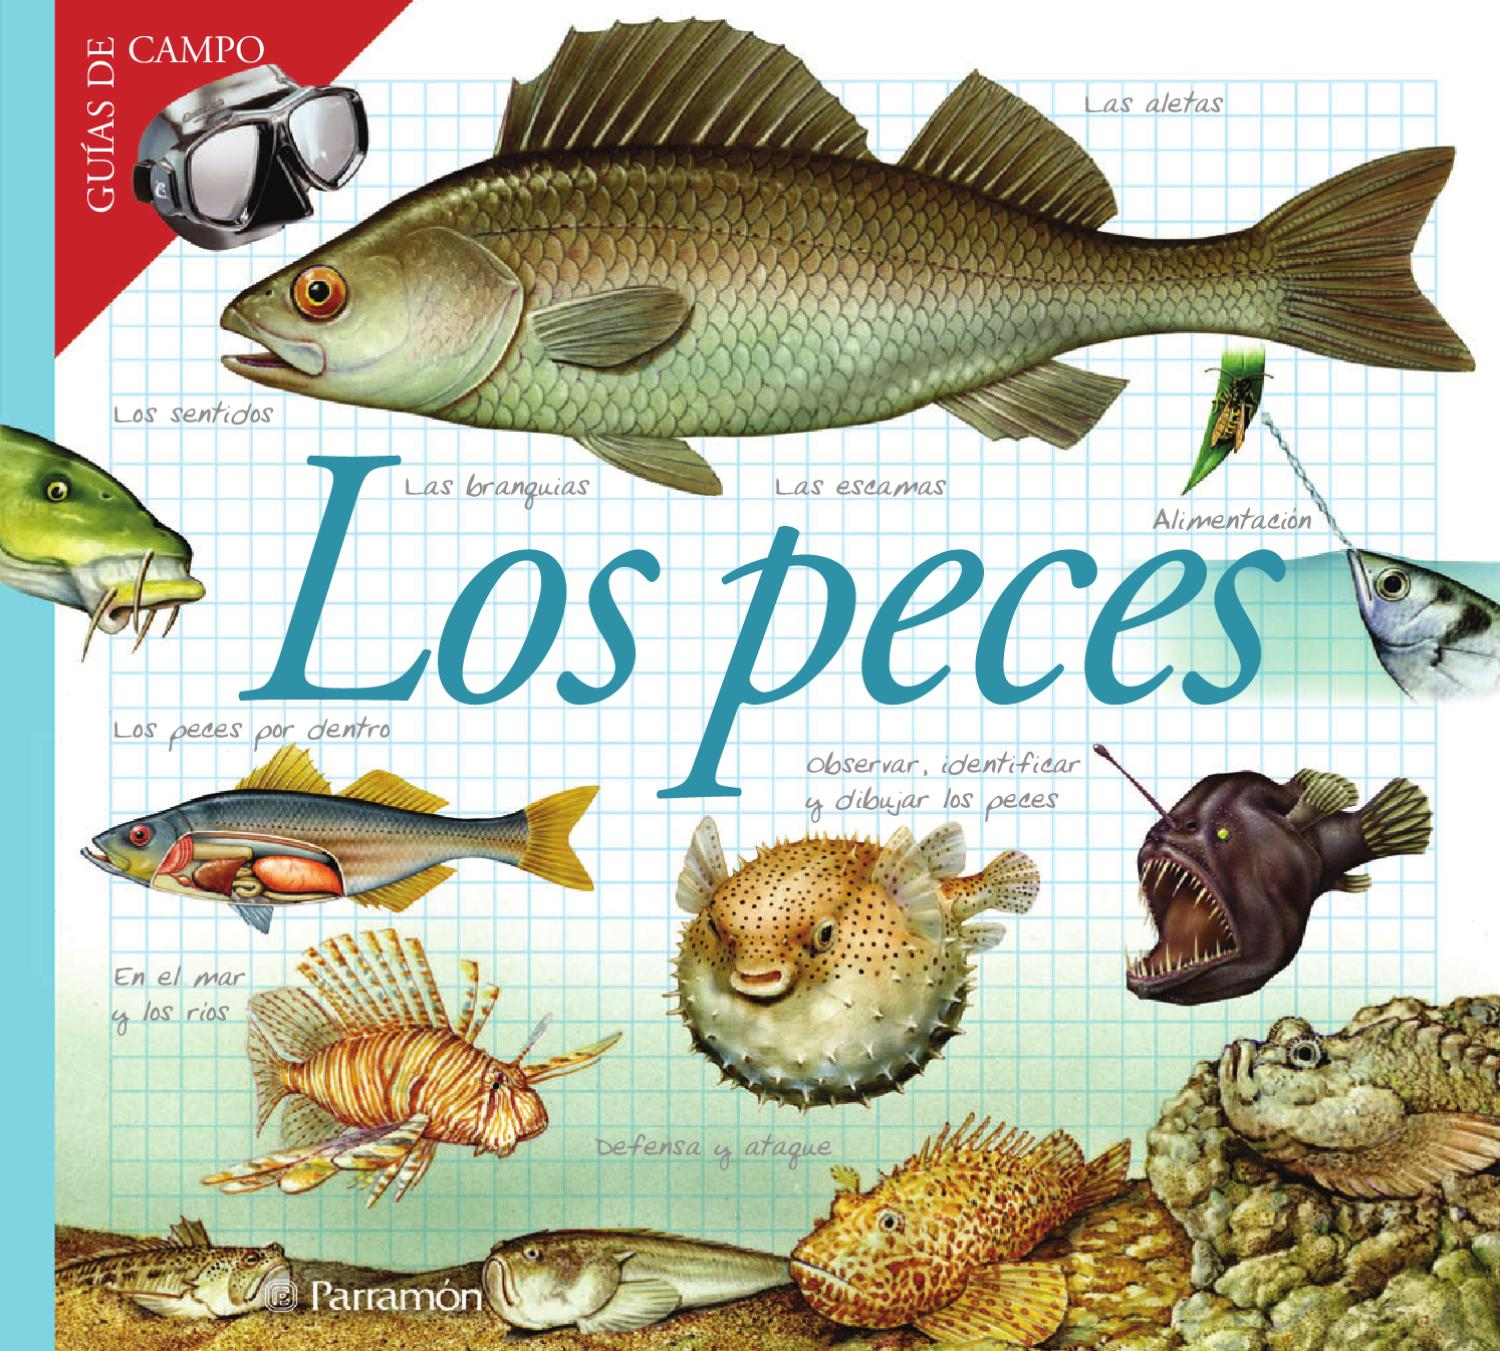 Gu as de campo los peces by jose carlos escobar issuu for La reproduccion de los peces